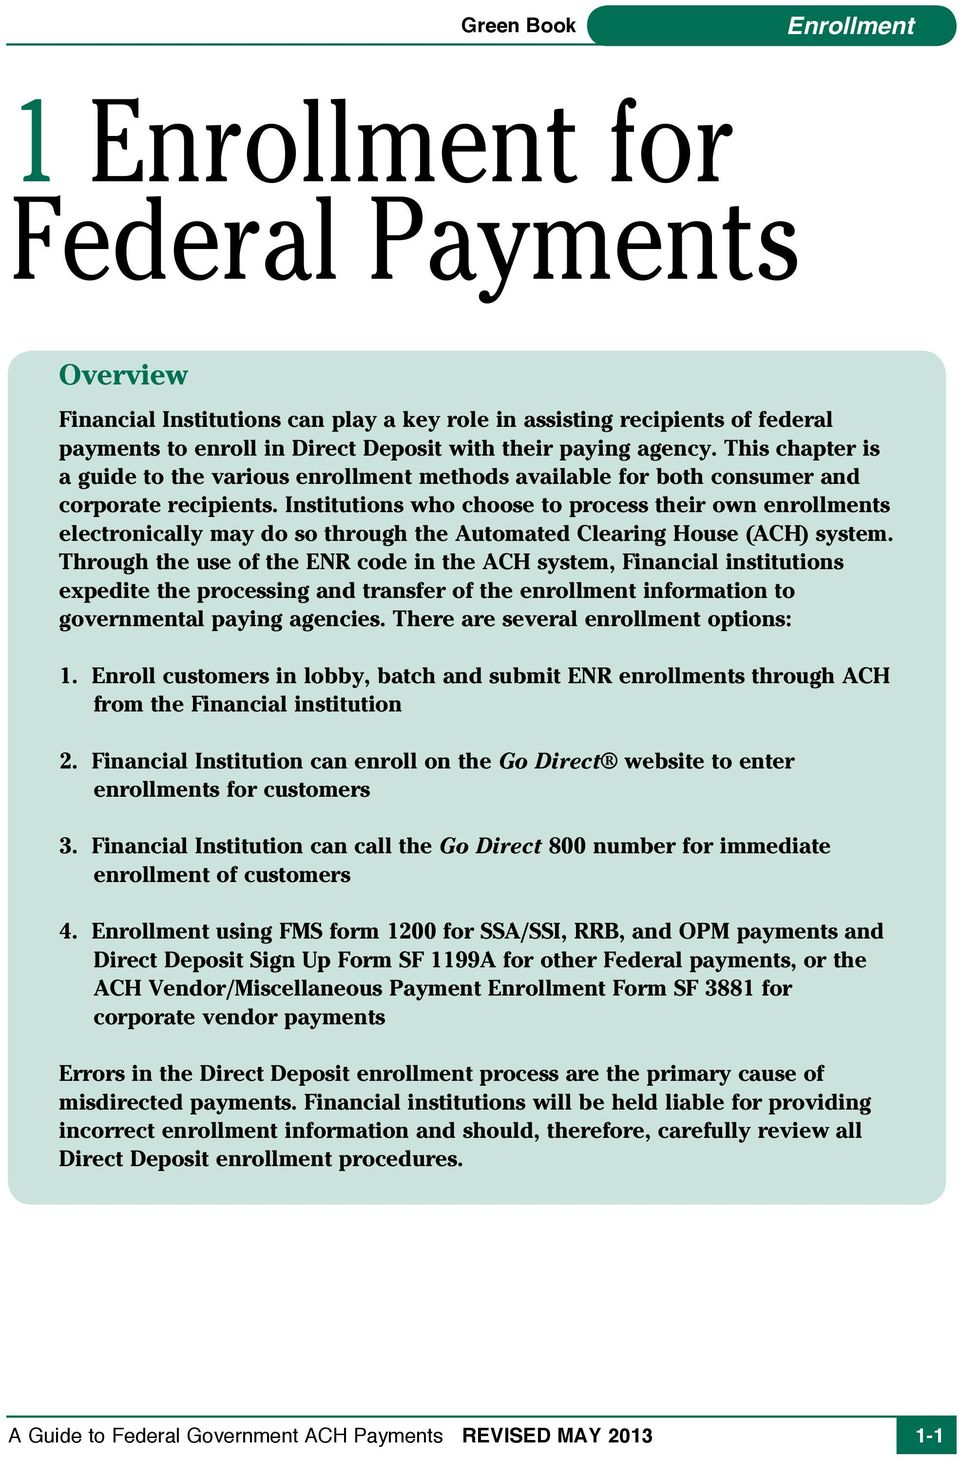 1 Enrollment for Federal Payments - PDF